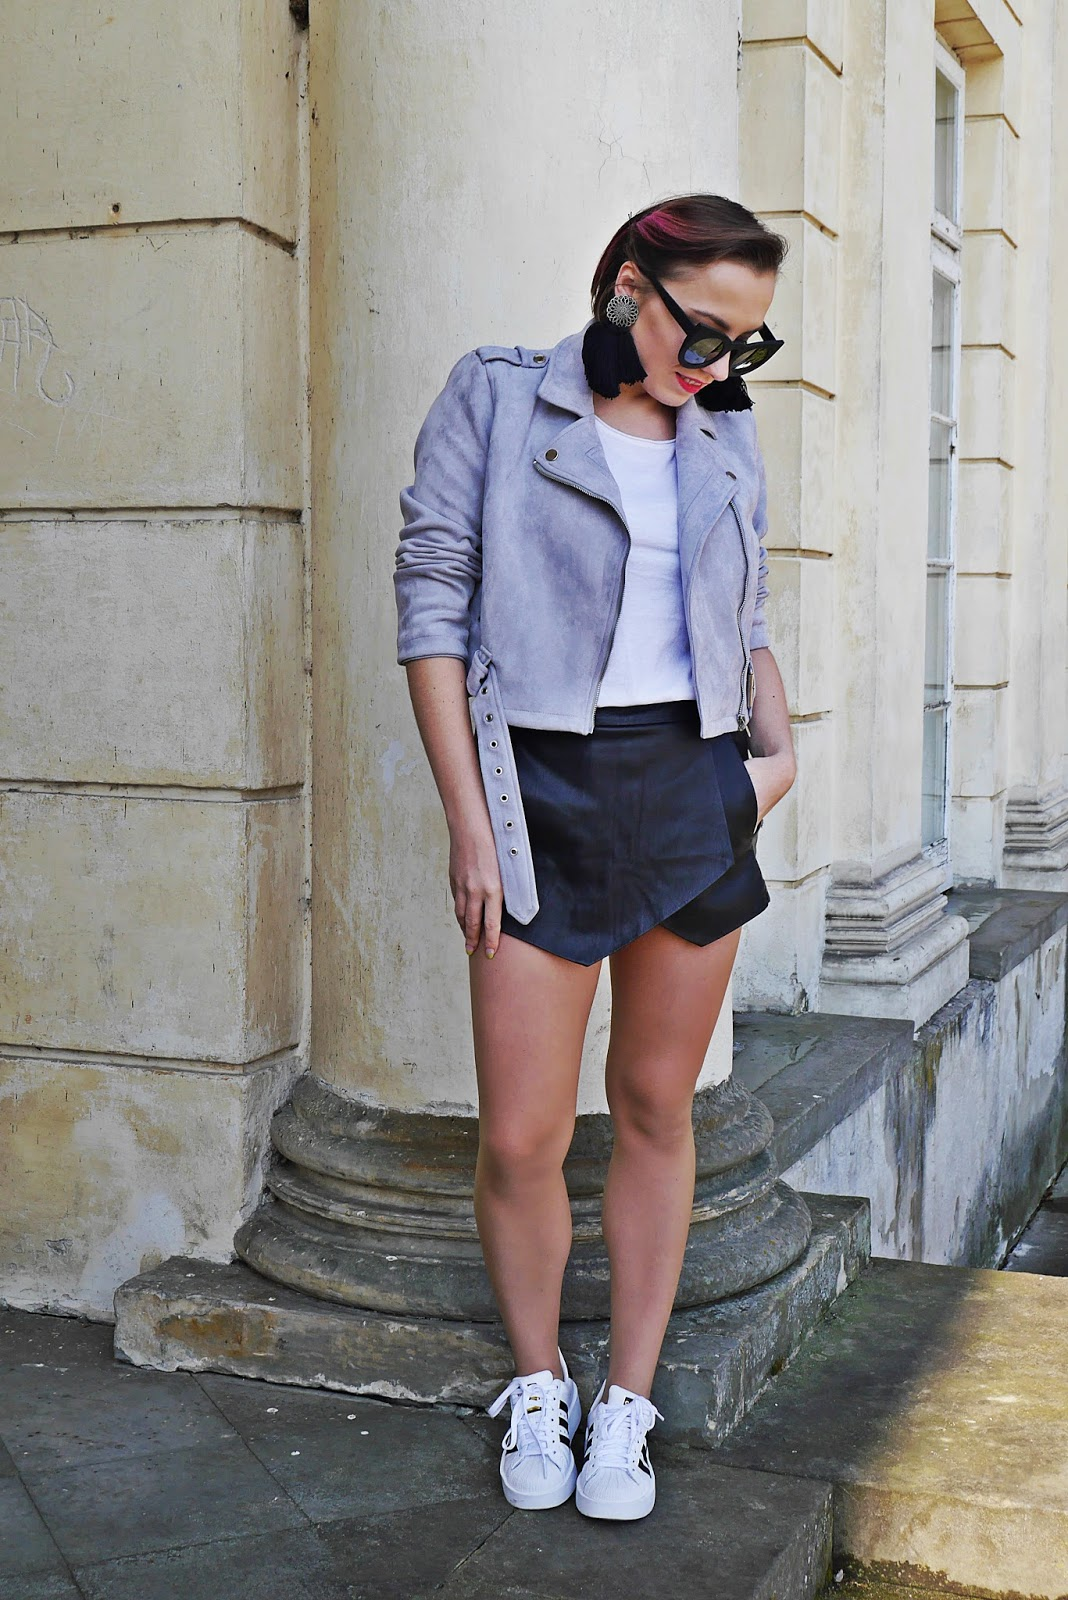 8_adidas_superstar_zara_shorts_gray_biker_jacket_karyn_blog_modowy_250318as